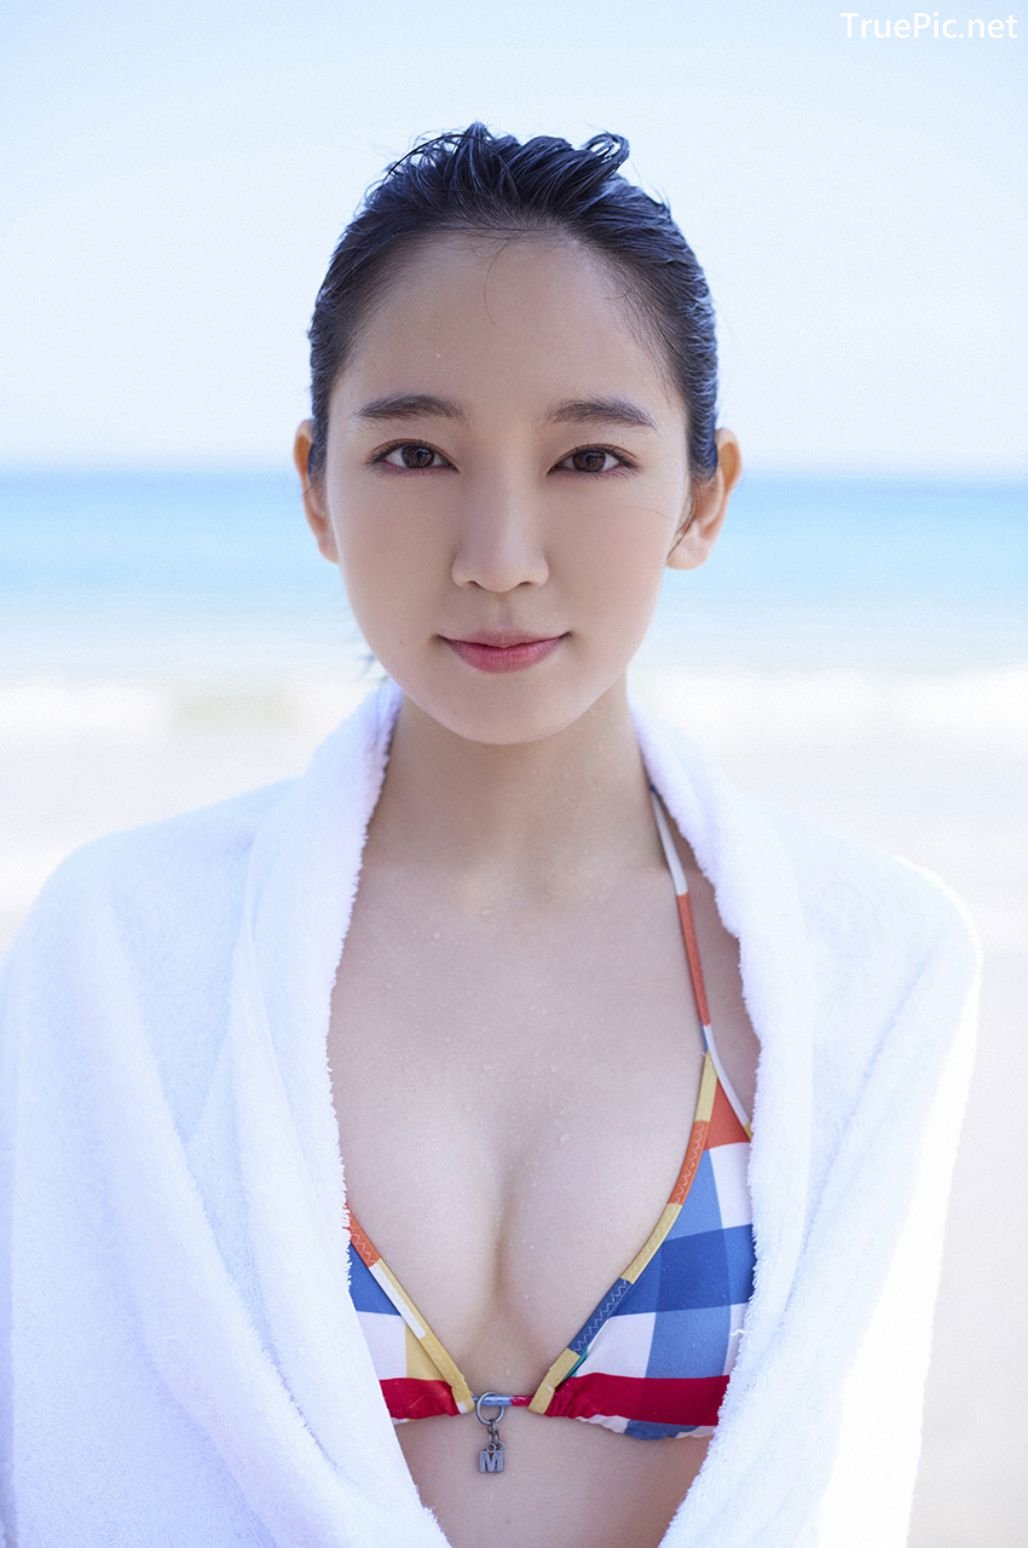 Image-Japanese-Actress-And-Model-Riho-Yoshioka-Pure-Beauty-Of-Sea-Goddess-TruePic.net- Picture-5